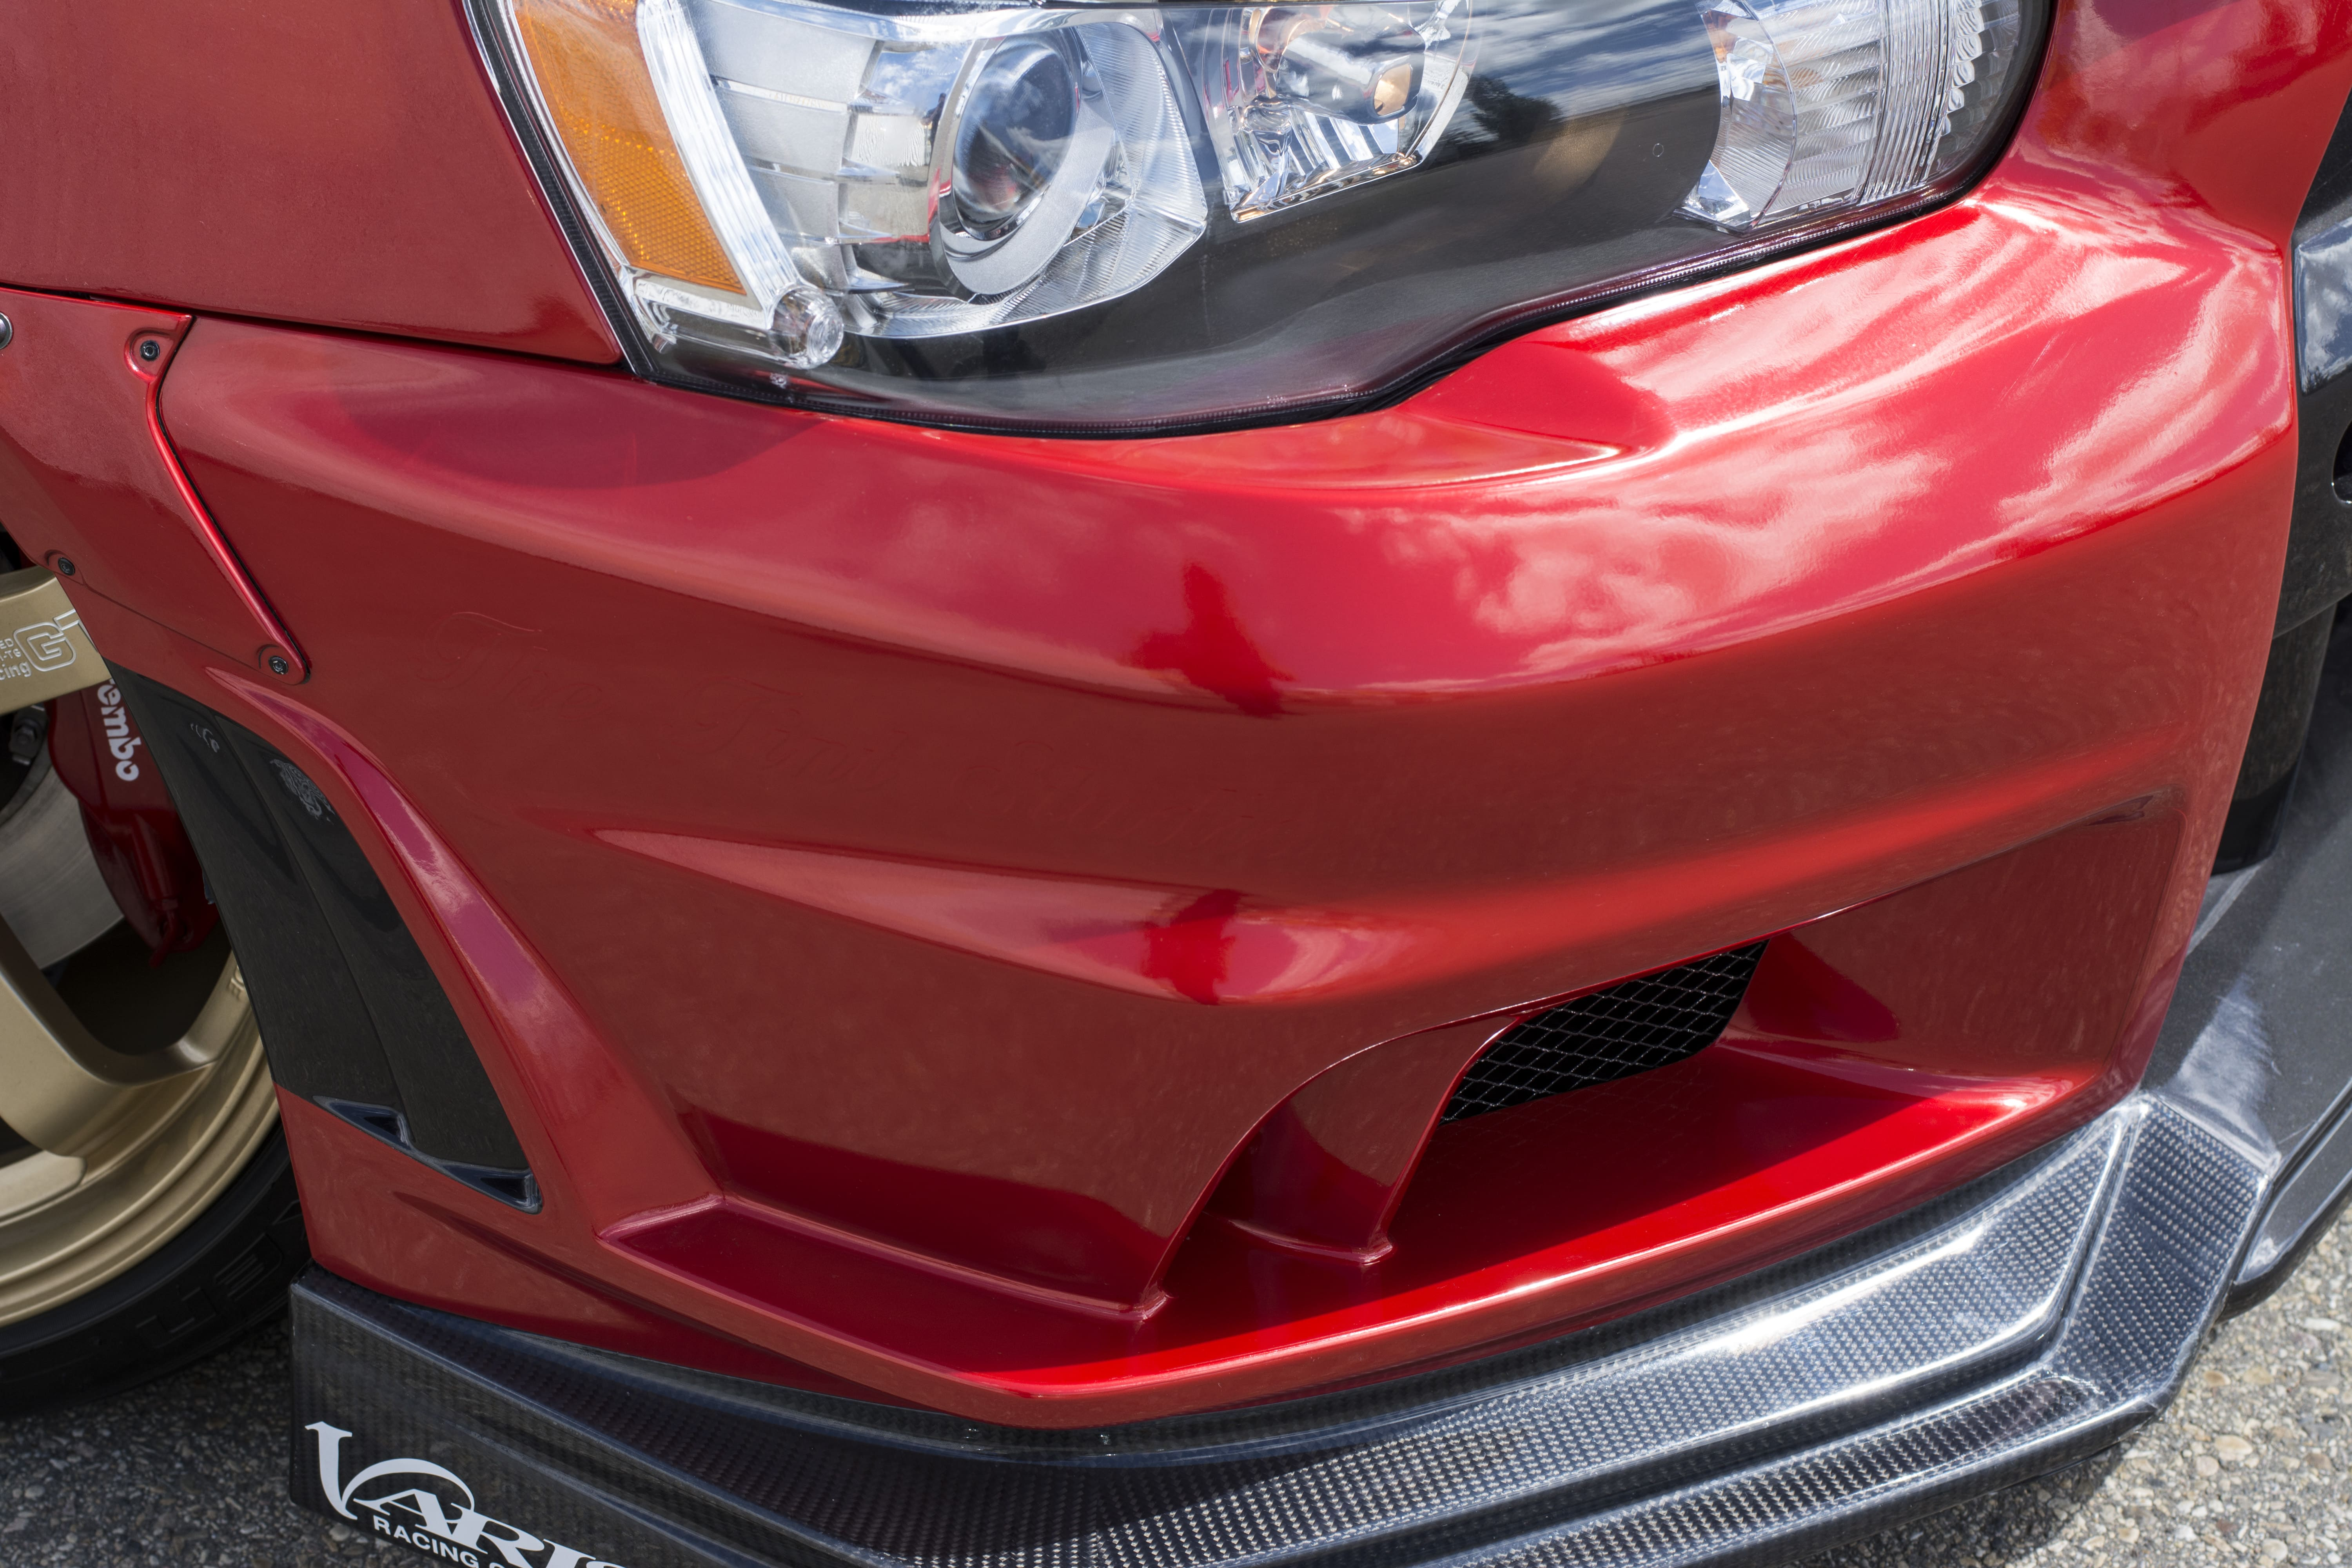 Mitsubishi Lancer Evo with Dragon Fire Red, image of front end bumper.